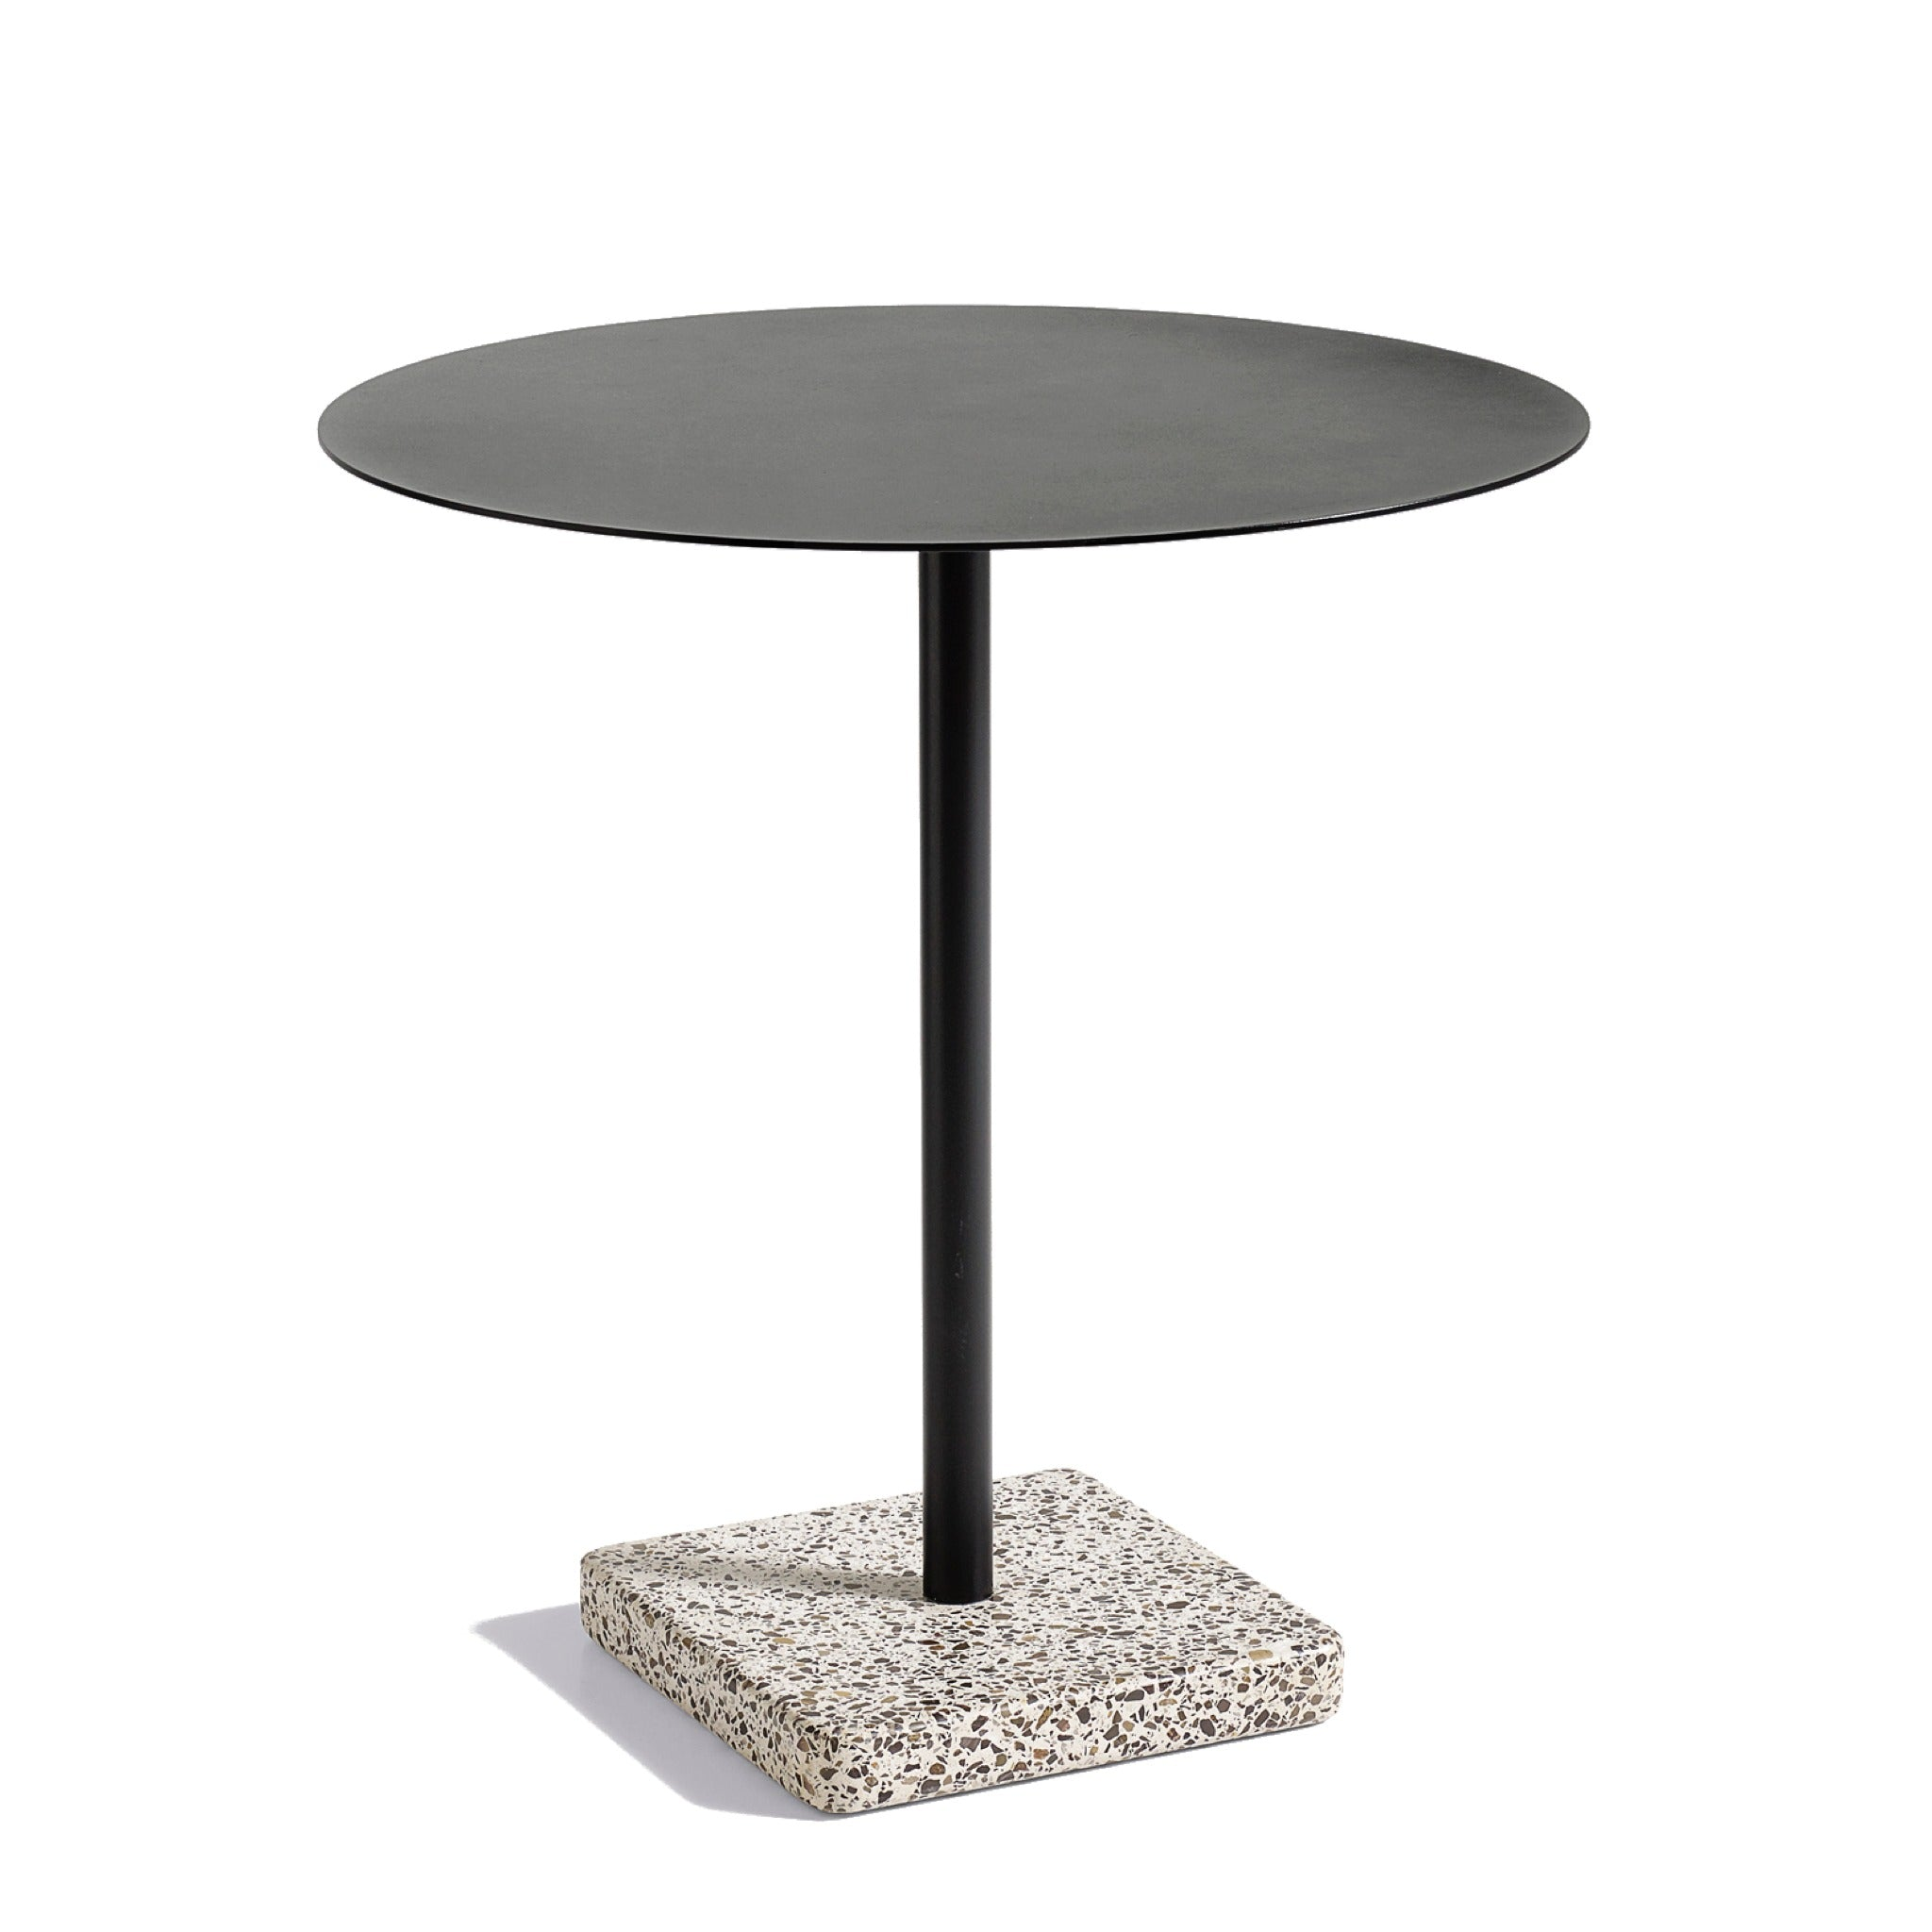 Terrazzo Table Round by Hay - haus®